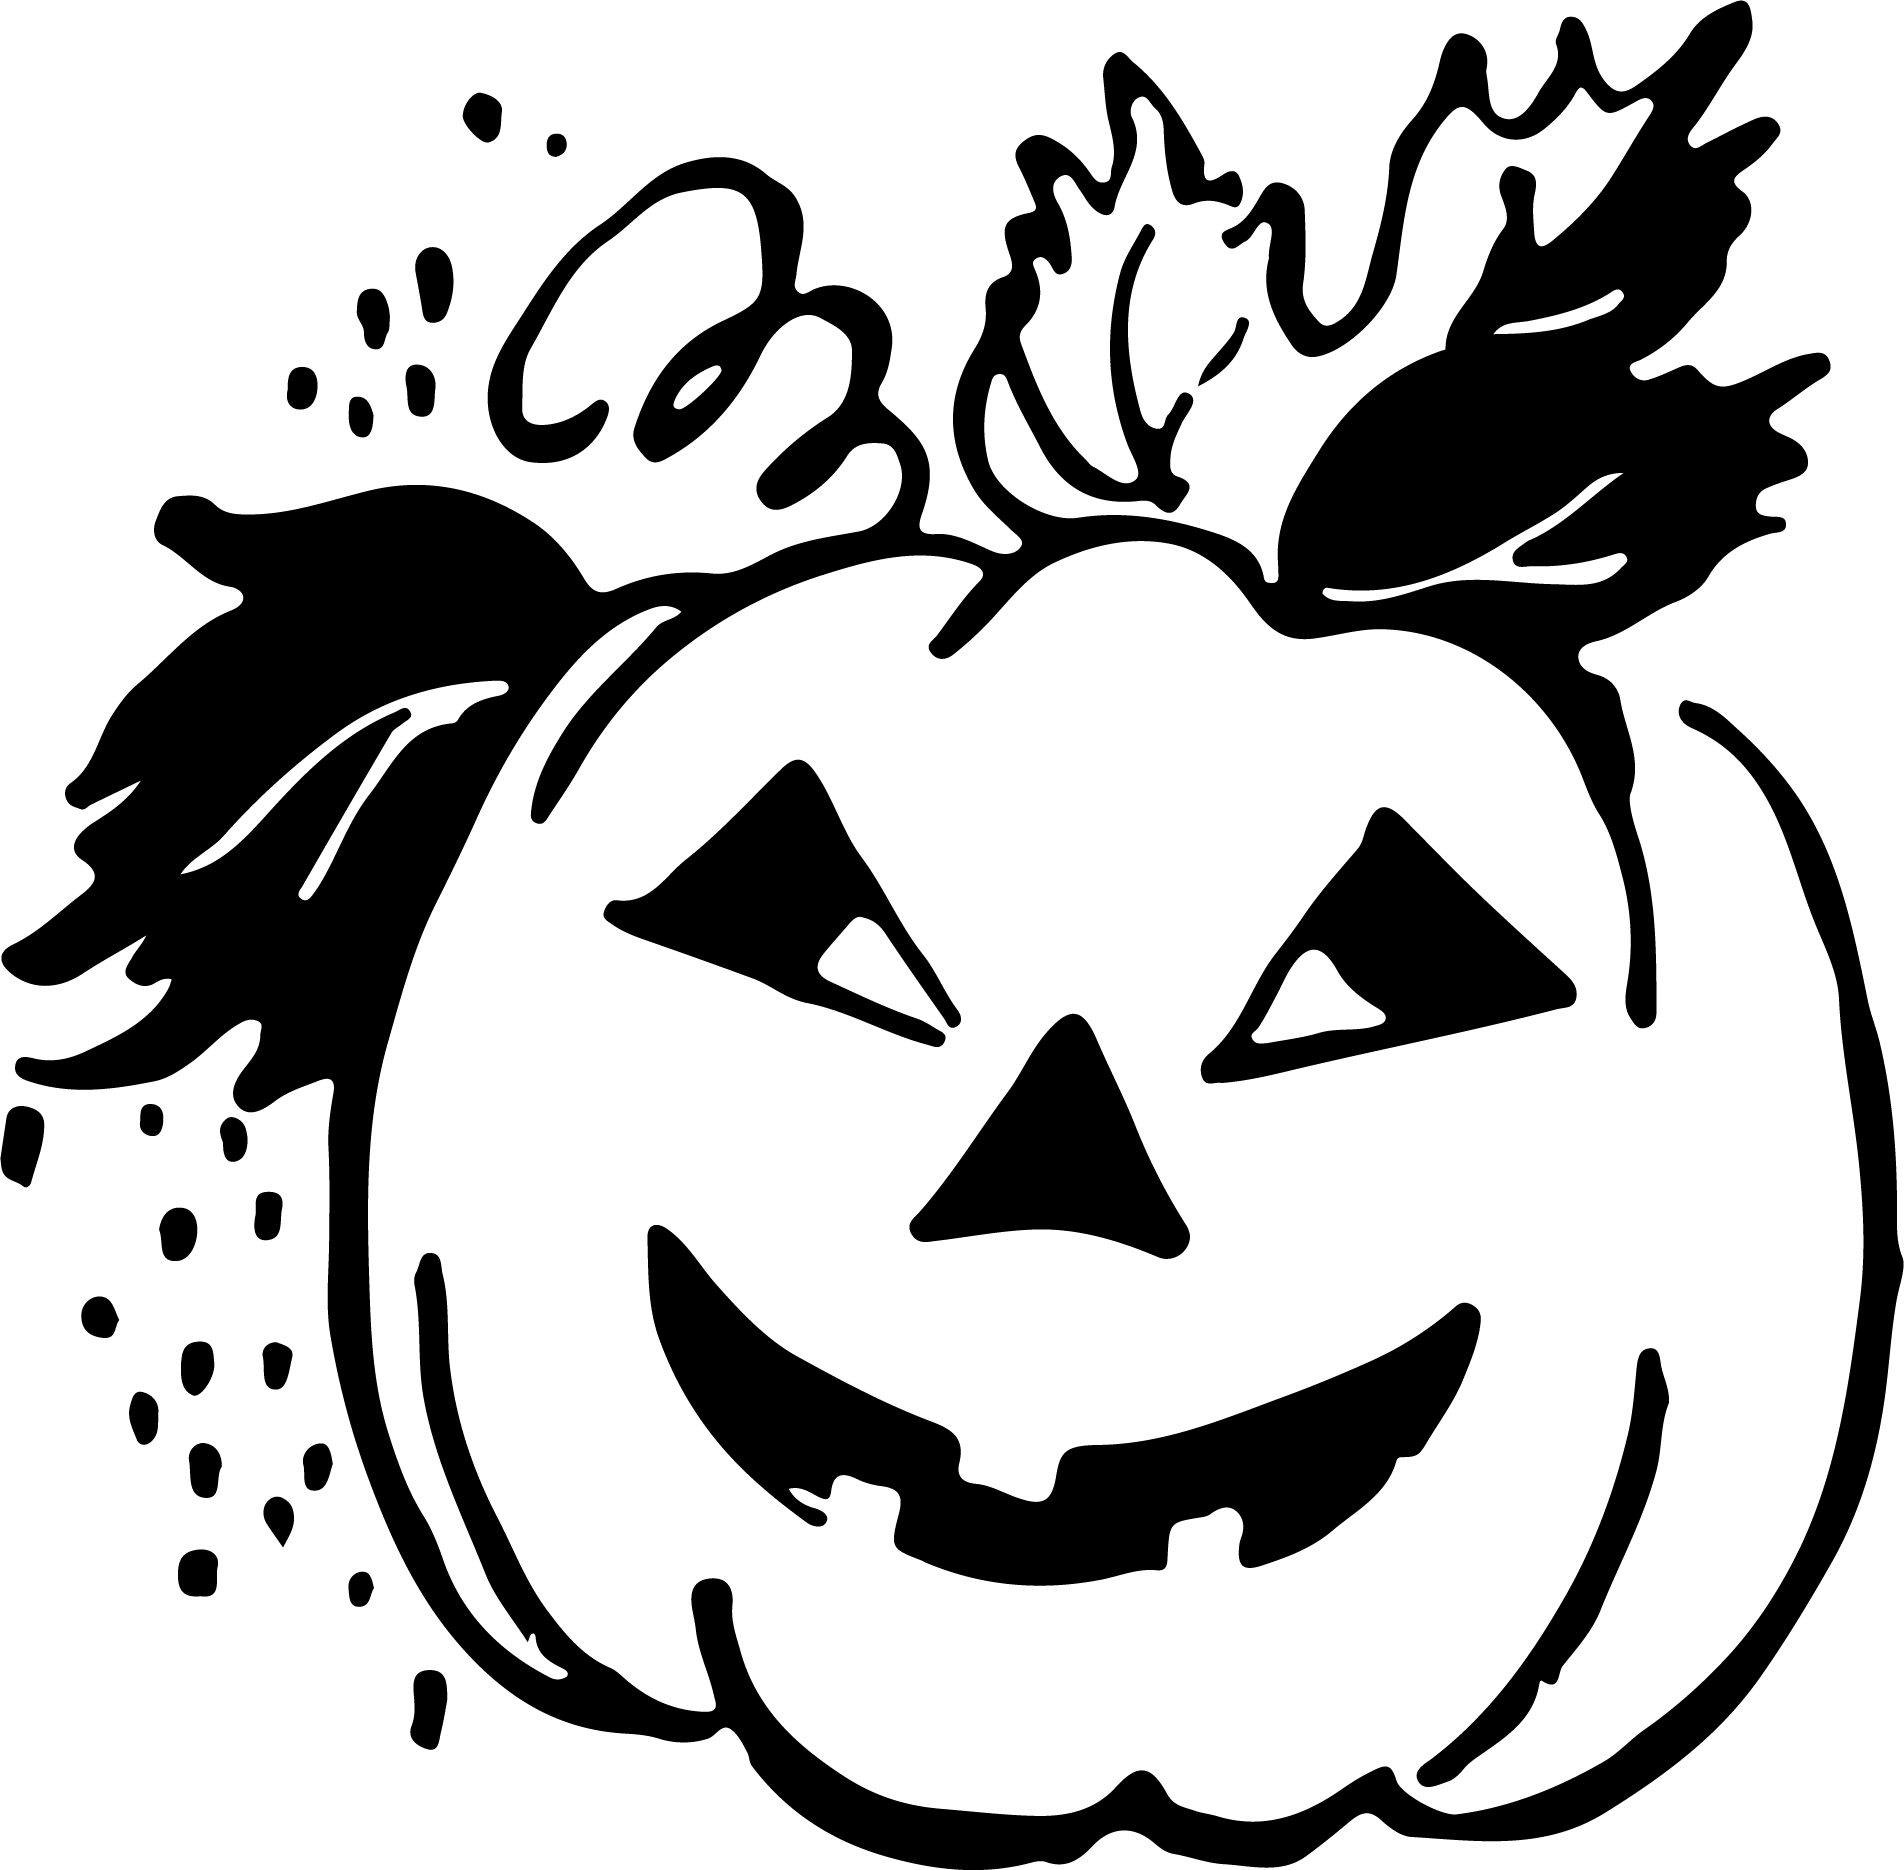 Halloween Clip Art For Kids And Teachers